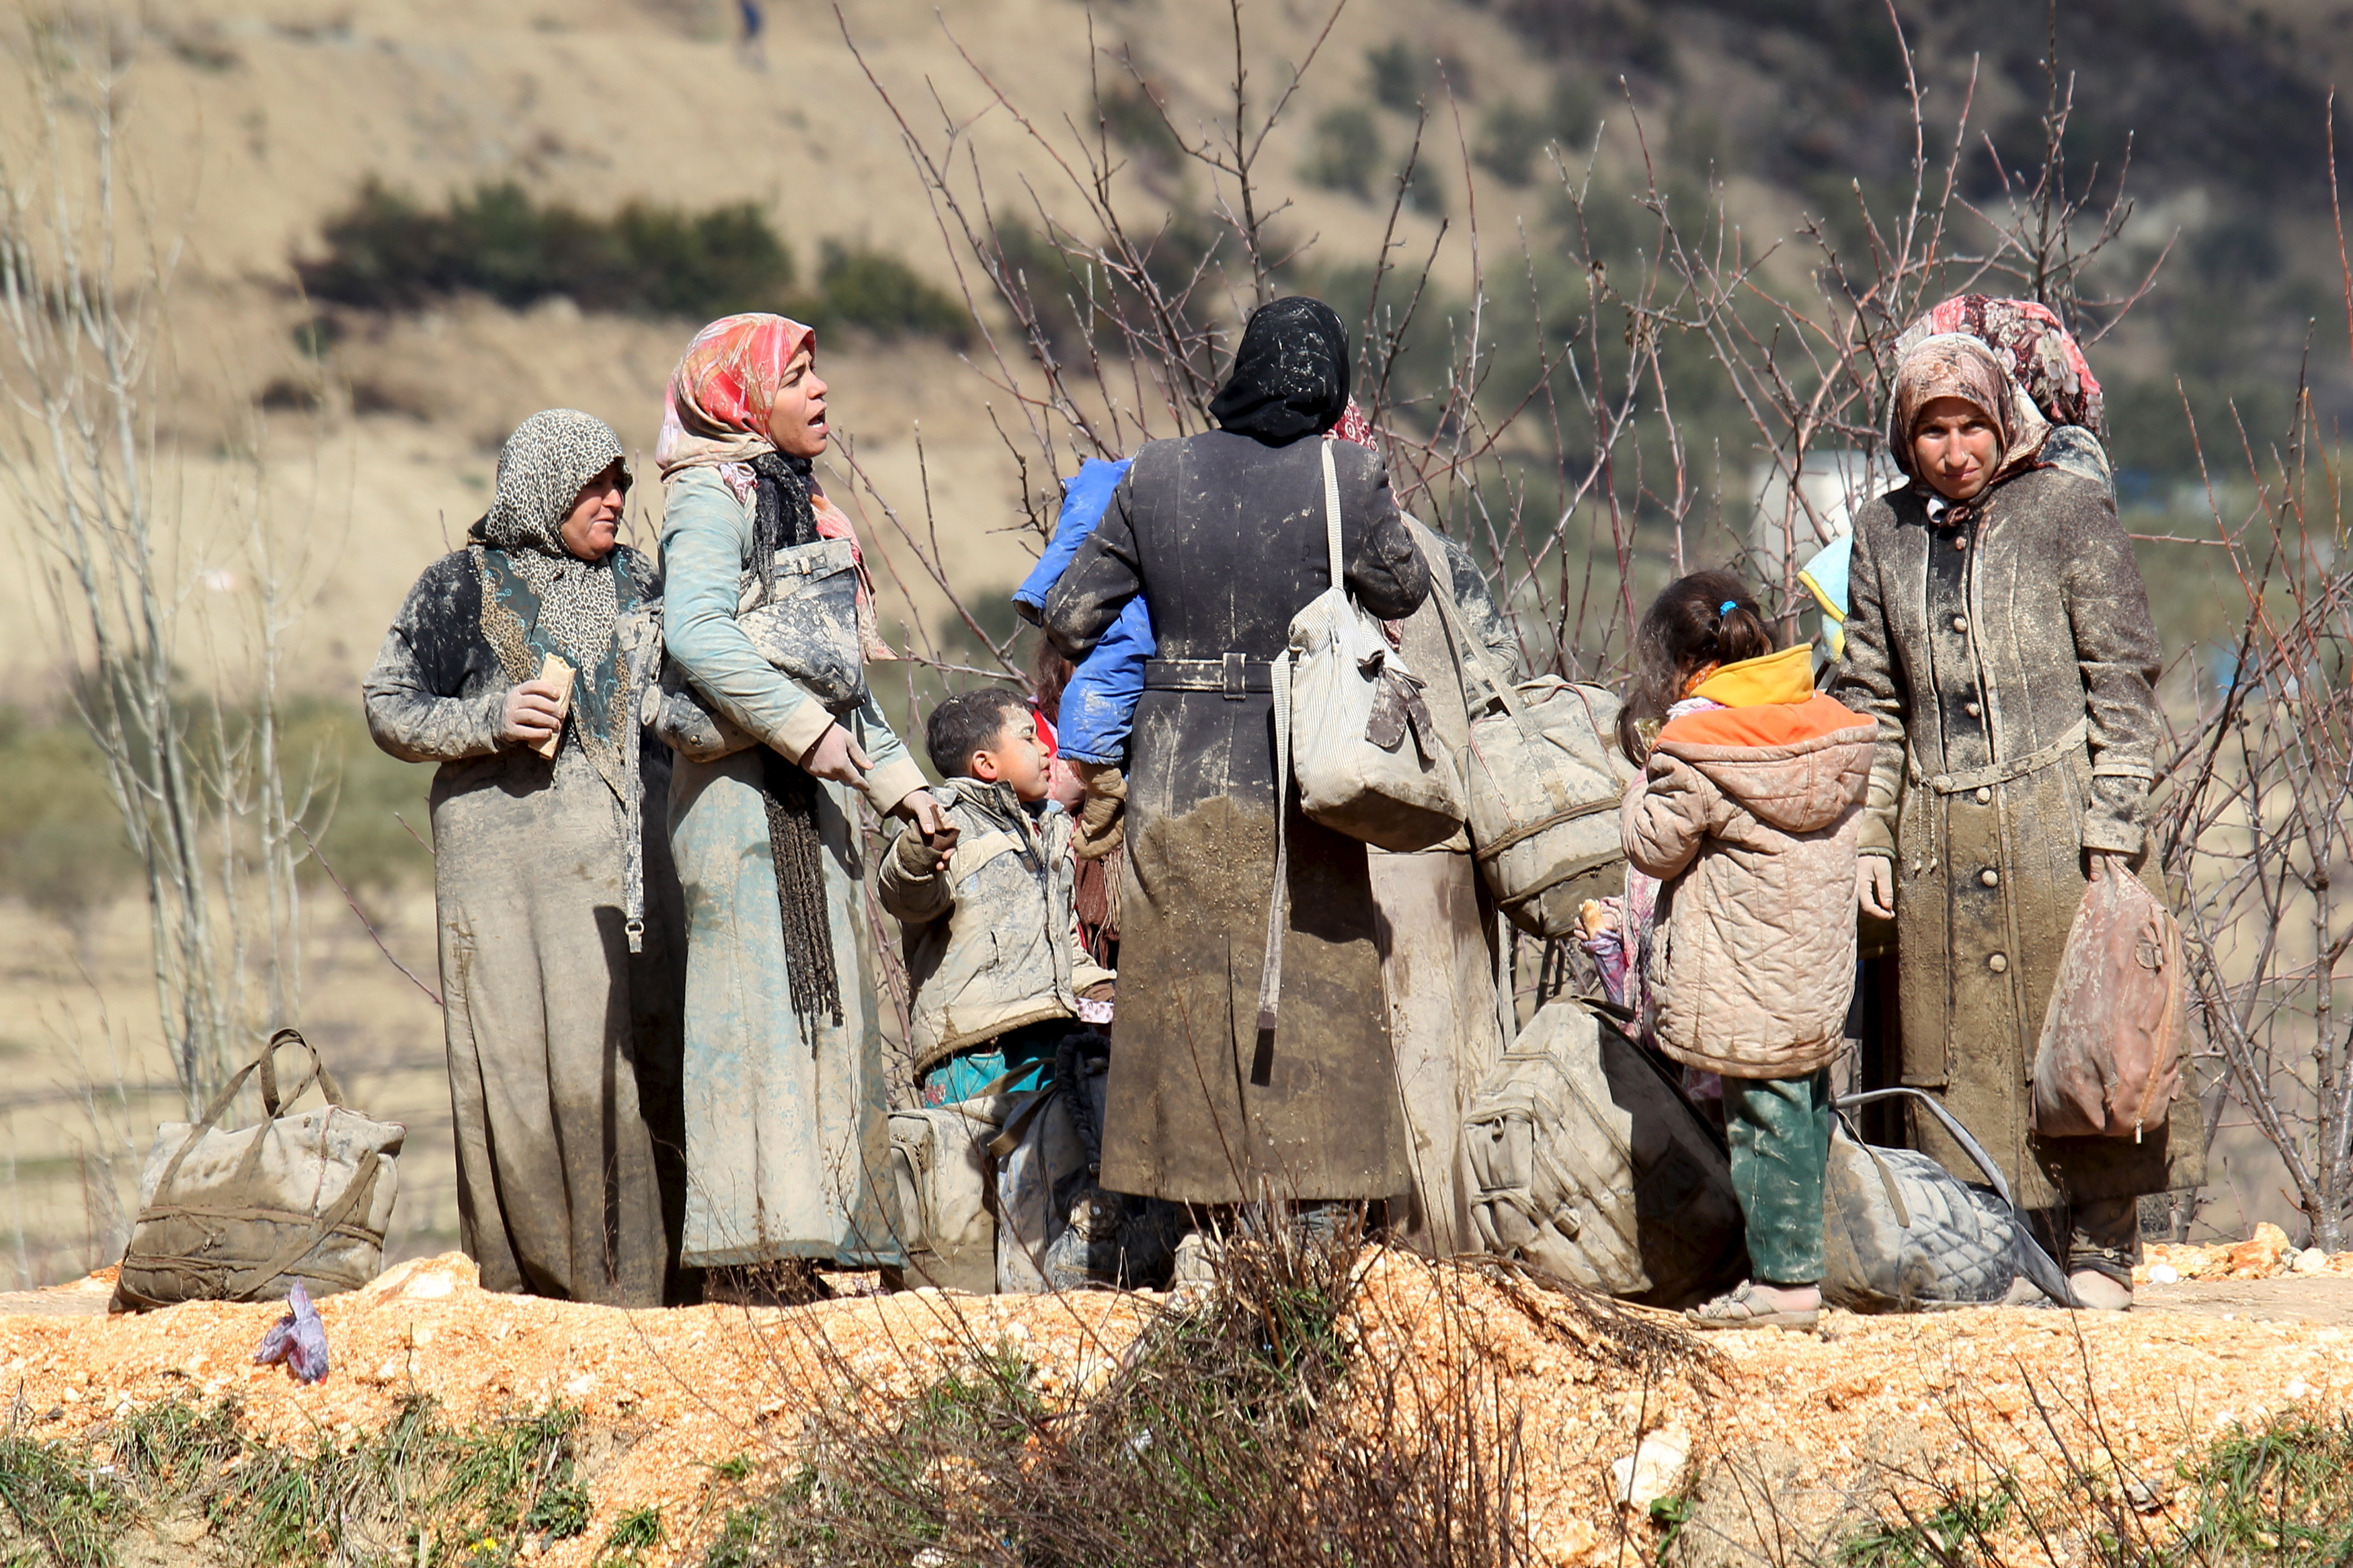 Internally displaced people, covered with mud, wait as they are stuck in the town of Khirbet Al-Joz, in Latakia countryside, waiting to get permission to cross into Turkey near the Syrian-Turkish border, Syria, Feb. 7, 2016.